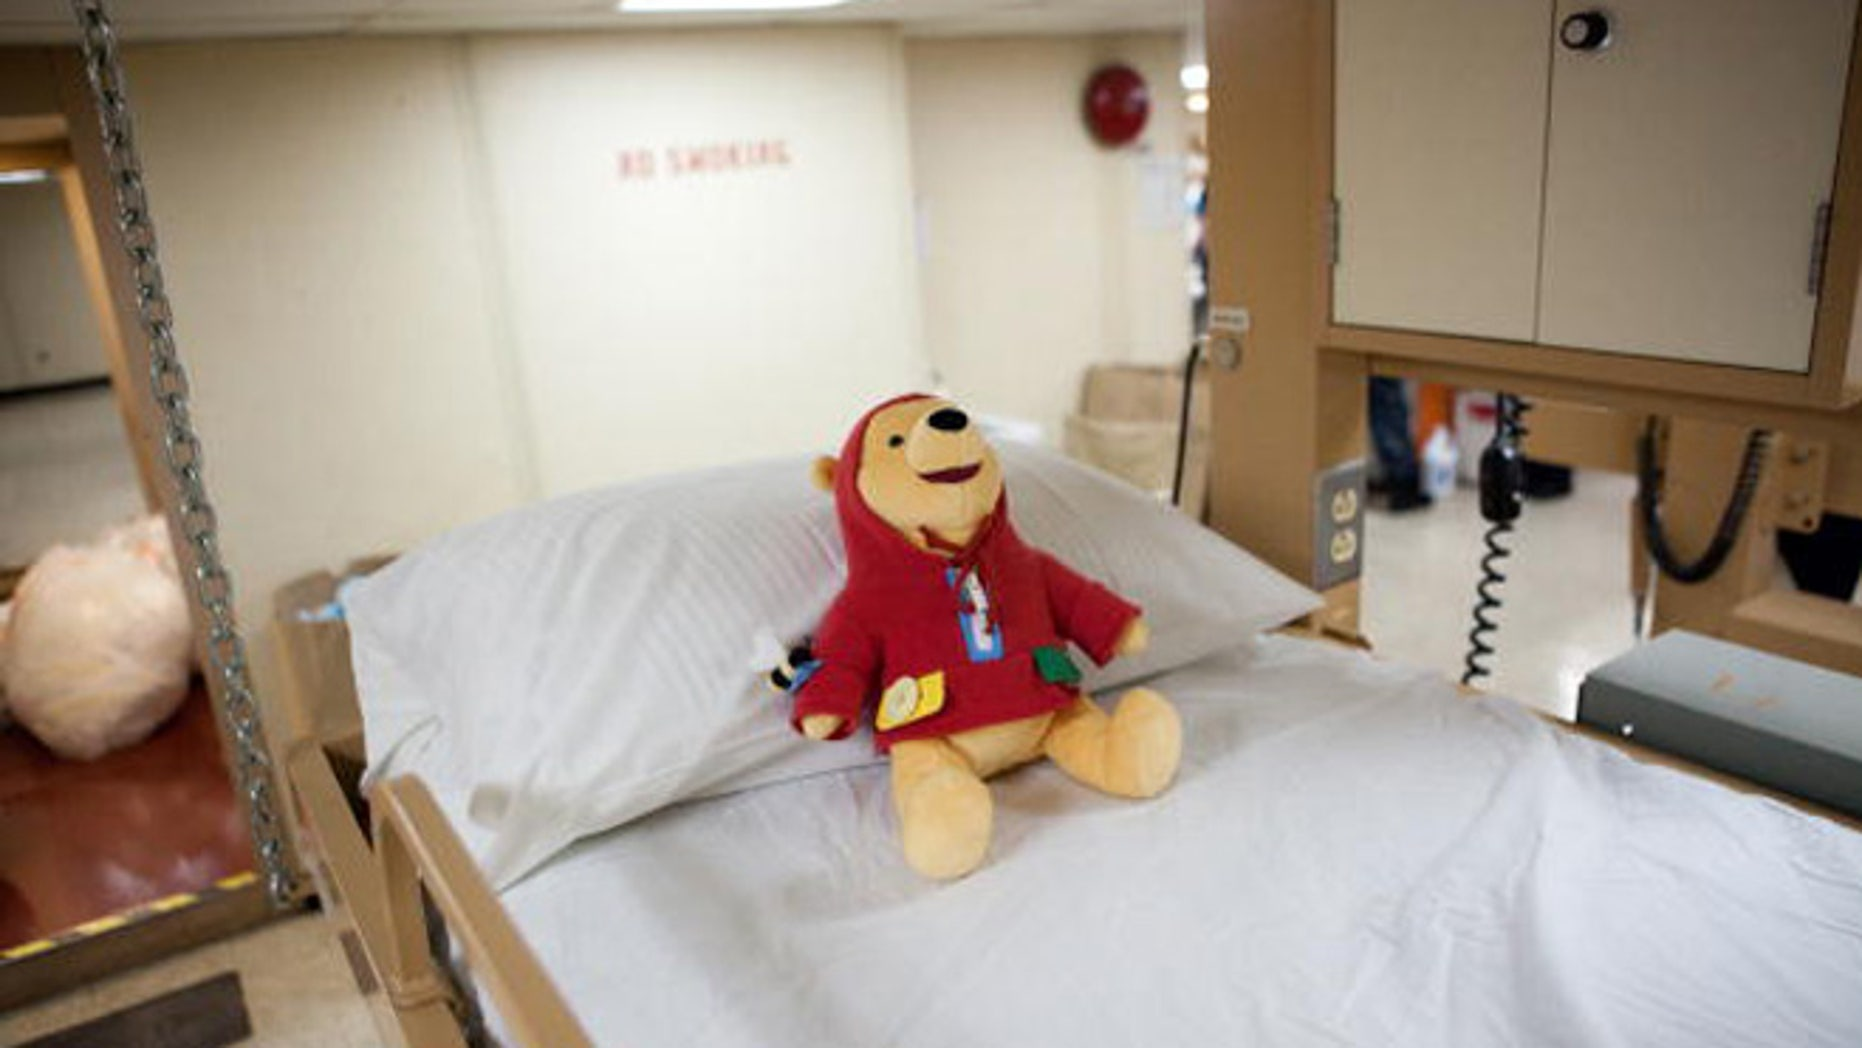 PORT-AU-PRINCE, HAITI - JANUARY 21: A Winnie the Pooh doll awaits patients in the pediatric ward on board the USNS Comfort, a U.S. Naval hospital ship, on January 21, 2010 in Port-au-Prince, Haiti. The Comfort deployed from Baltimore with 550 medical personnel on board to treat victims of Haiti's recent earthquake, and arrived on January 20. (Photo by Brendan Hoffman/Getty Images)